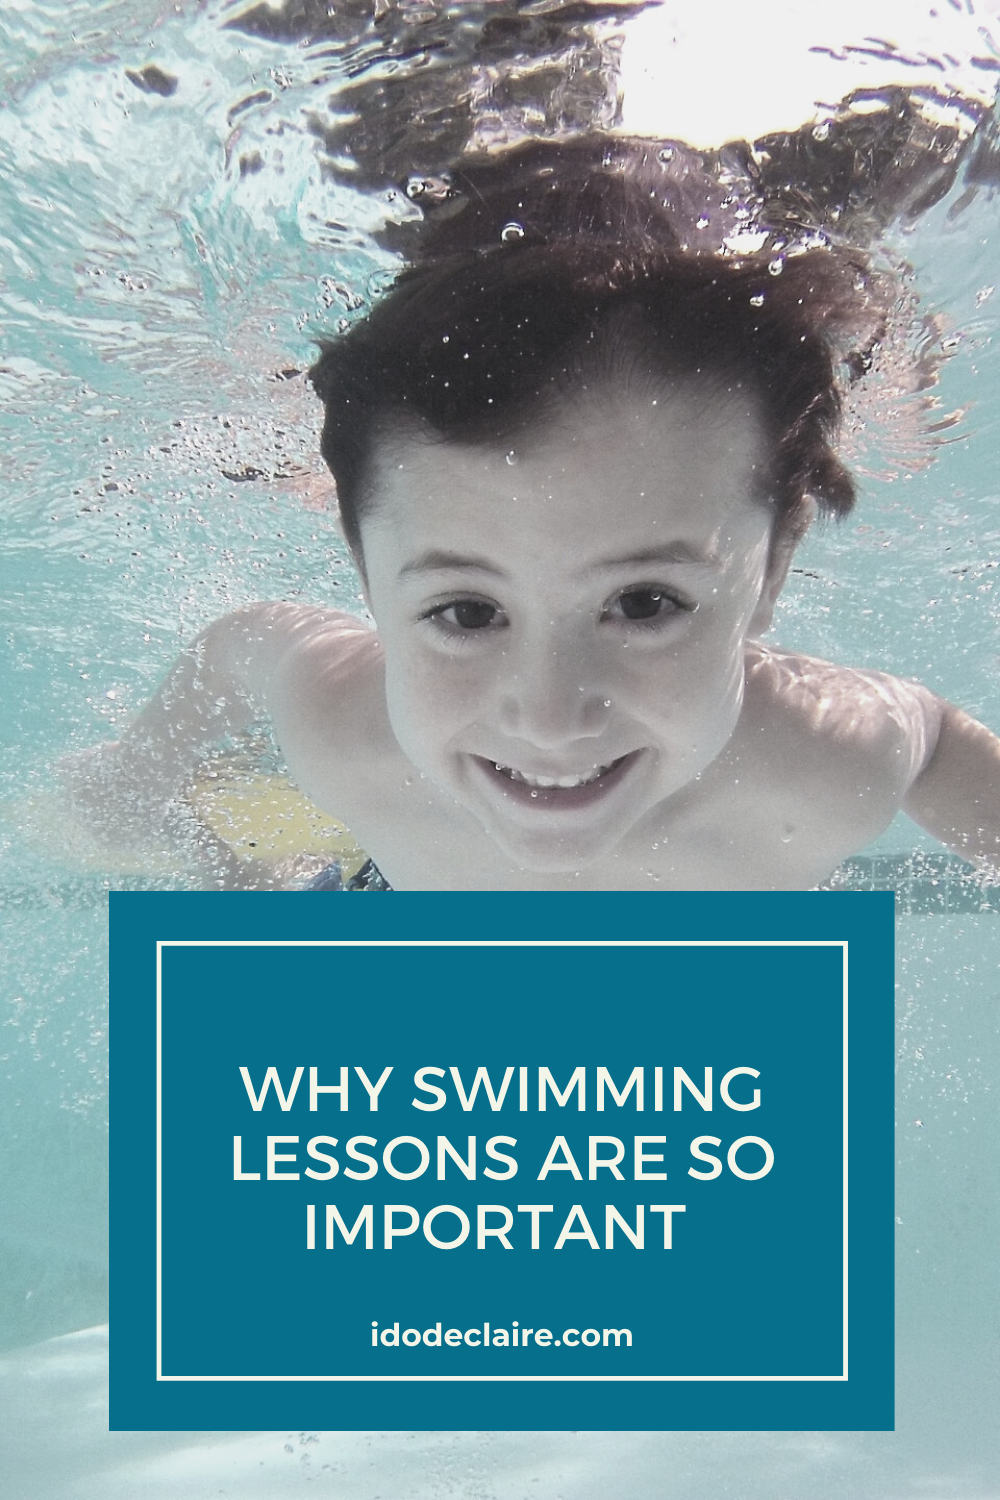 Why Swimming Lessons Are So Important